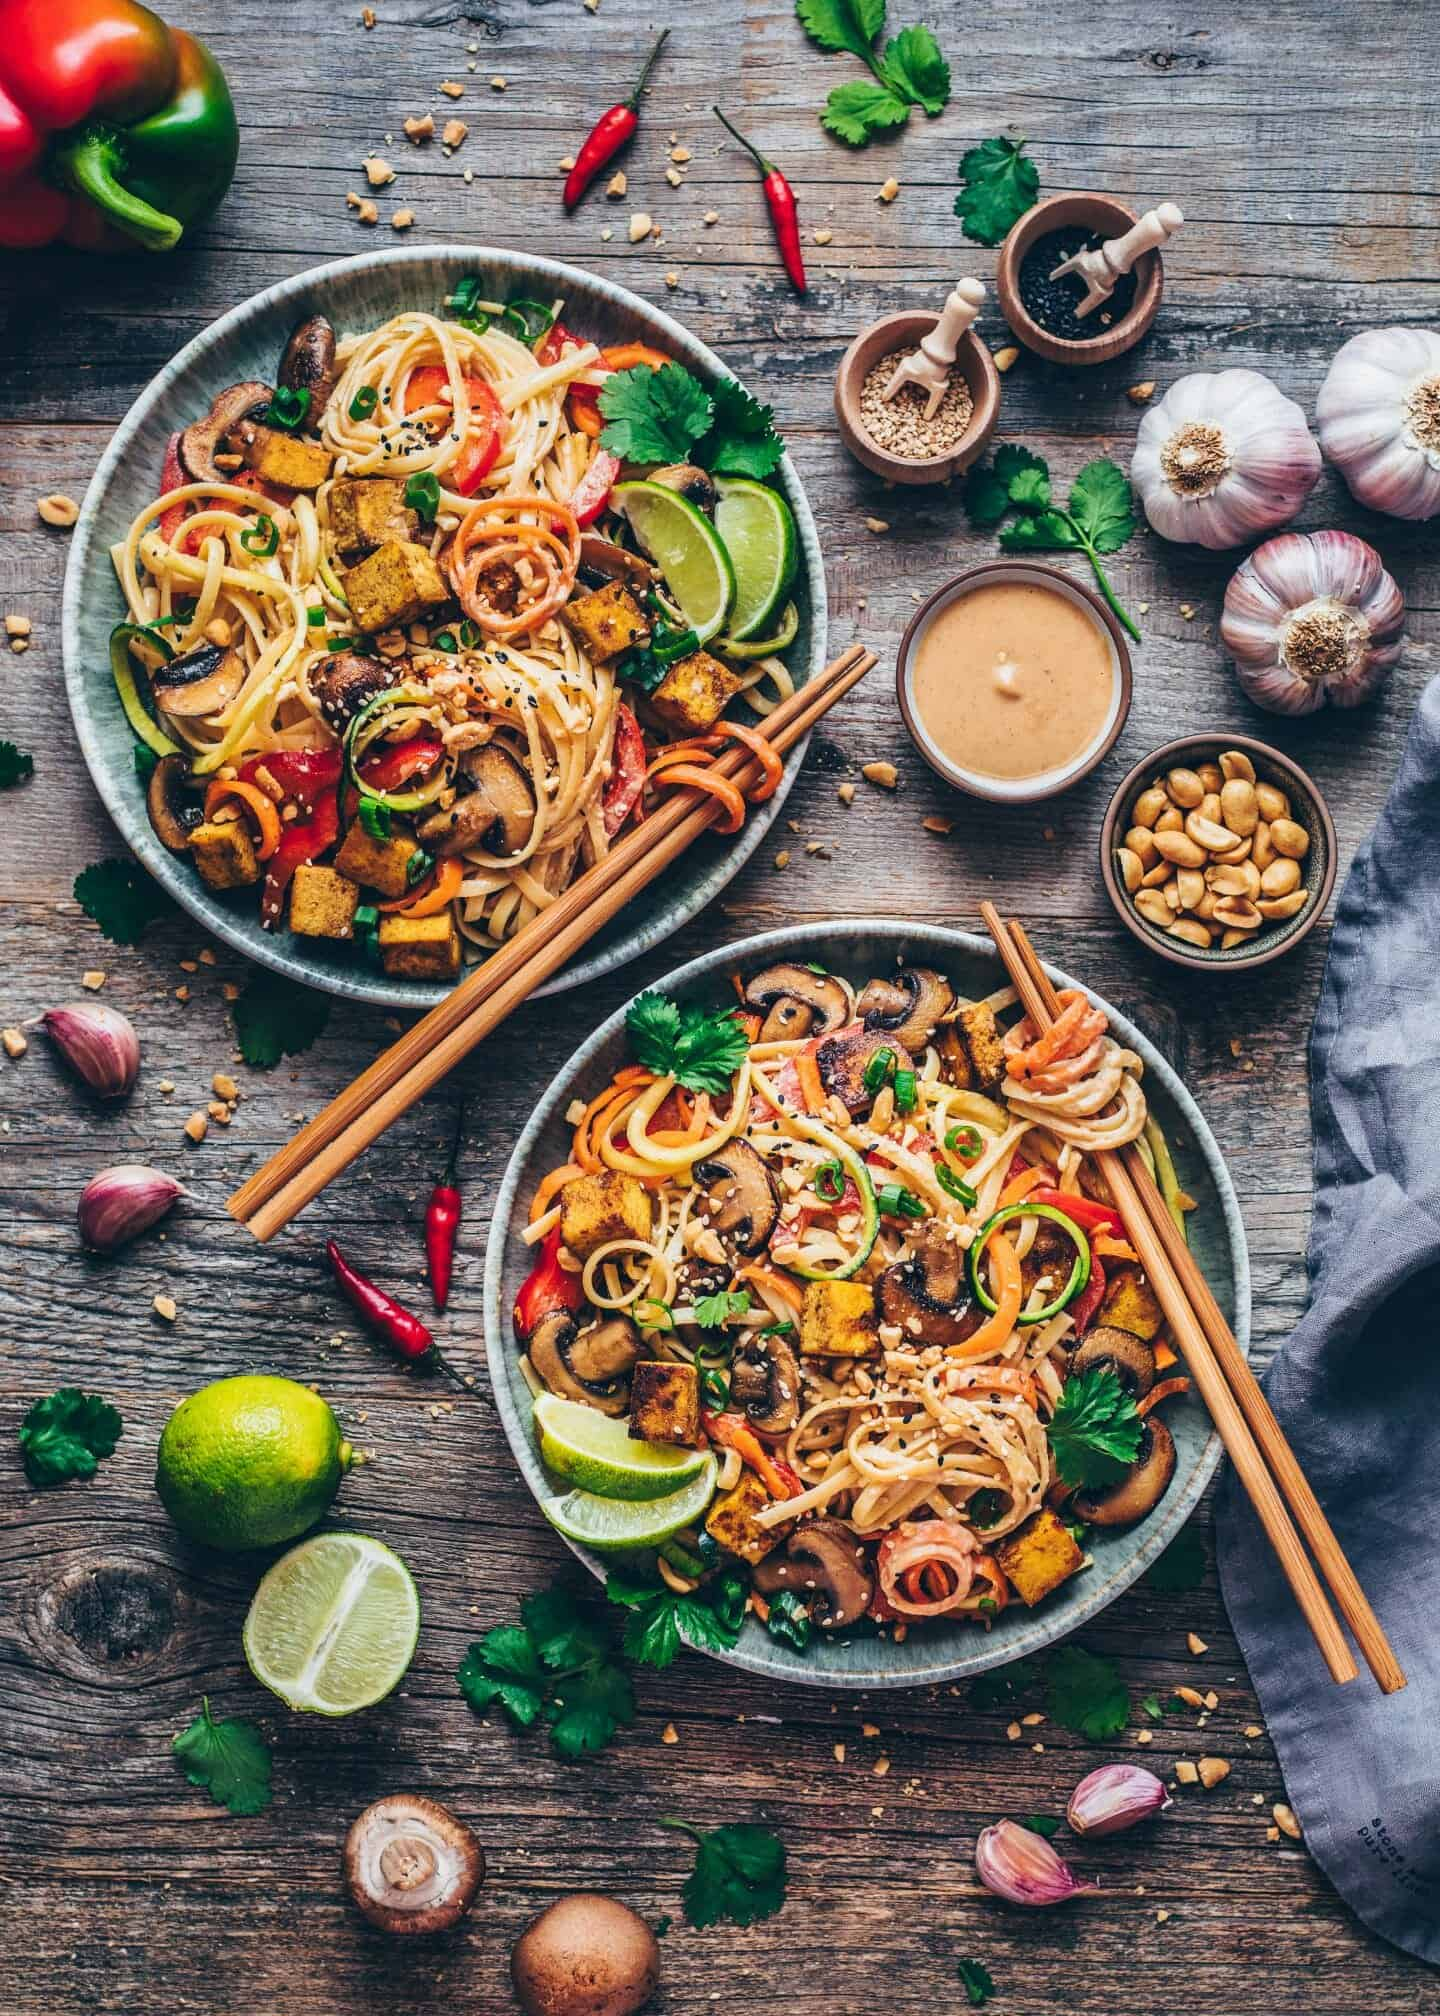 Pad Thai with crispy tofu, vegetable noodles, creamy peanut sauce. Quick and easy Recipe, healthy, delicious, gluten-free. Carrot noodles, Zucchini Noodles, mushrooms.